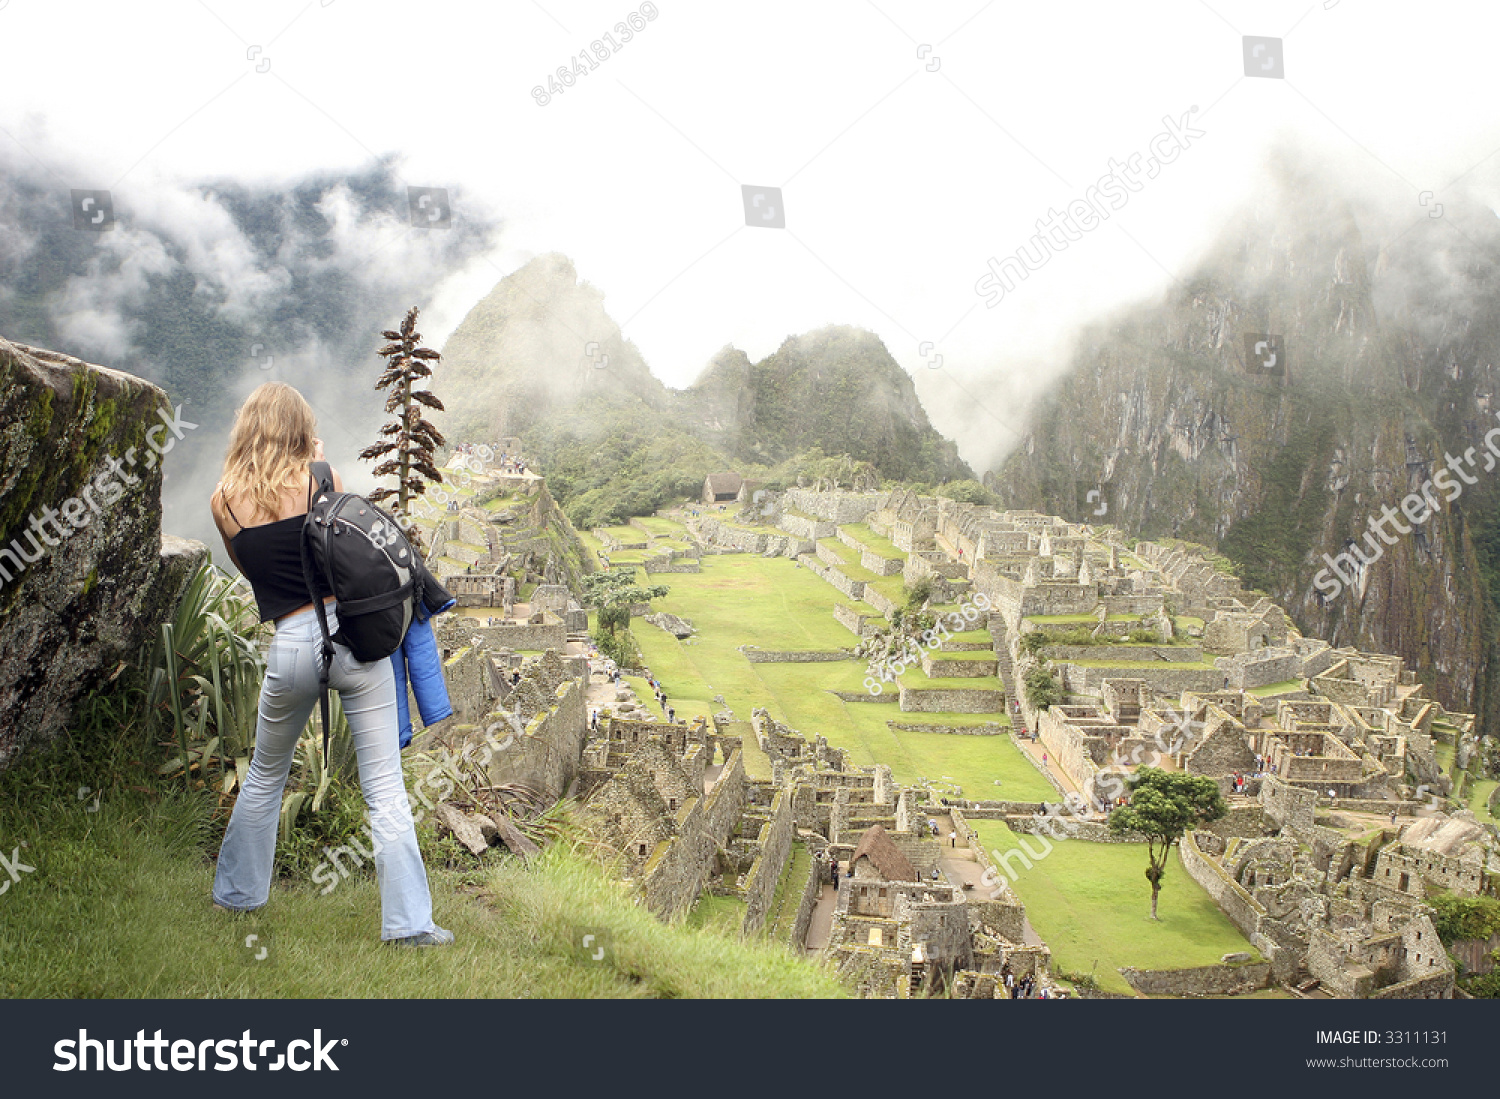 Peruvian Riddle of the Stone with a model of the city